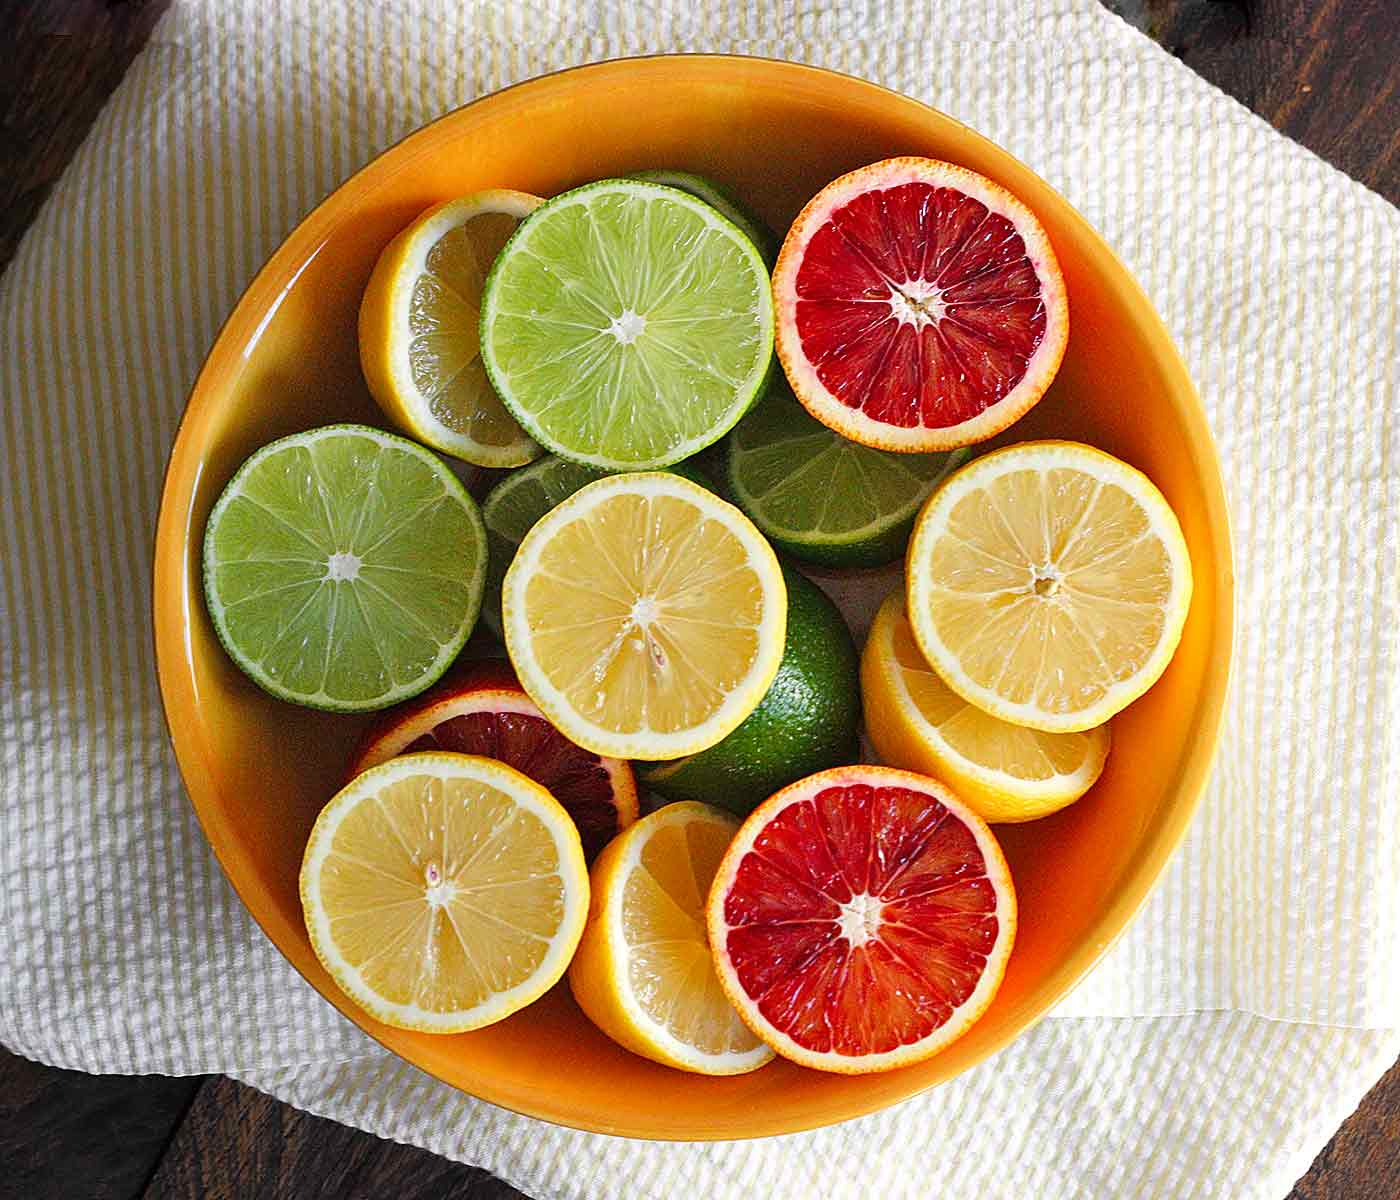 Lemons, limes and blood oranges ready to squeeze for homemade sour mix